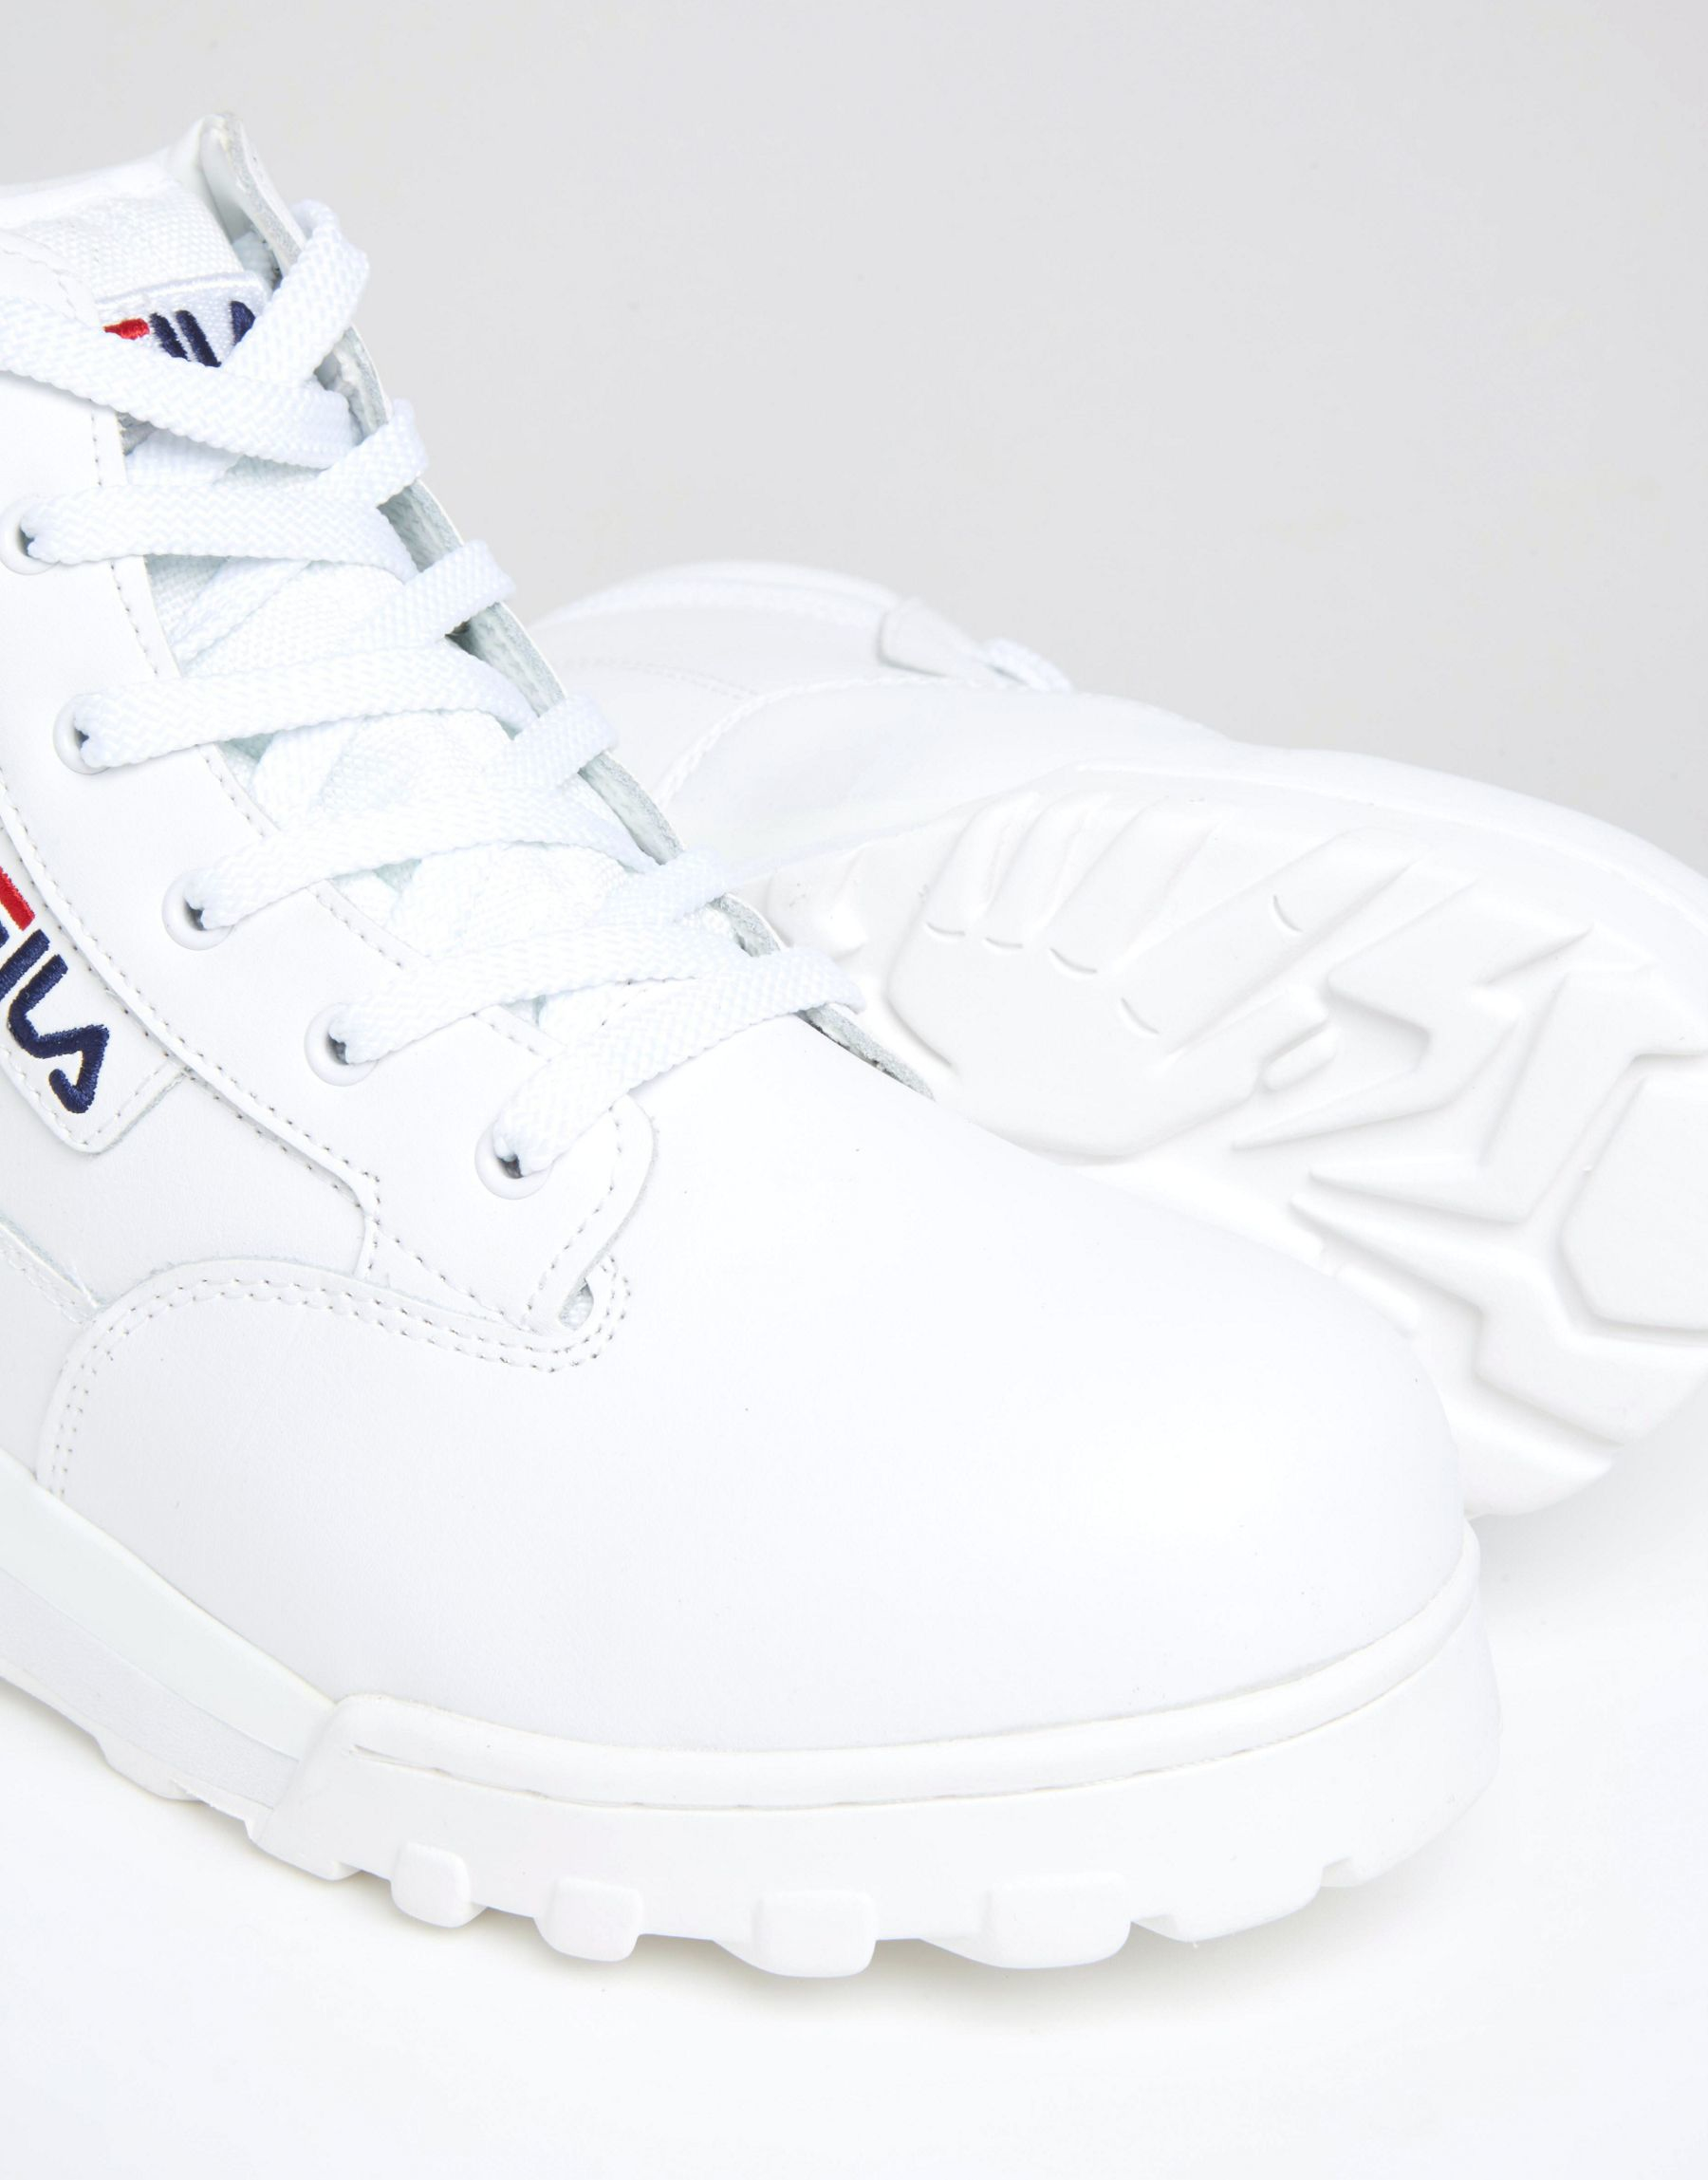 55335567c002 Lyst - Fila Grunge Mid Laceup Boots in White for Men